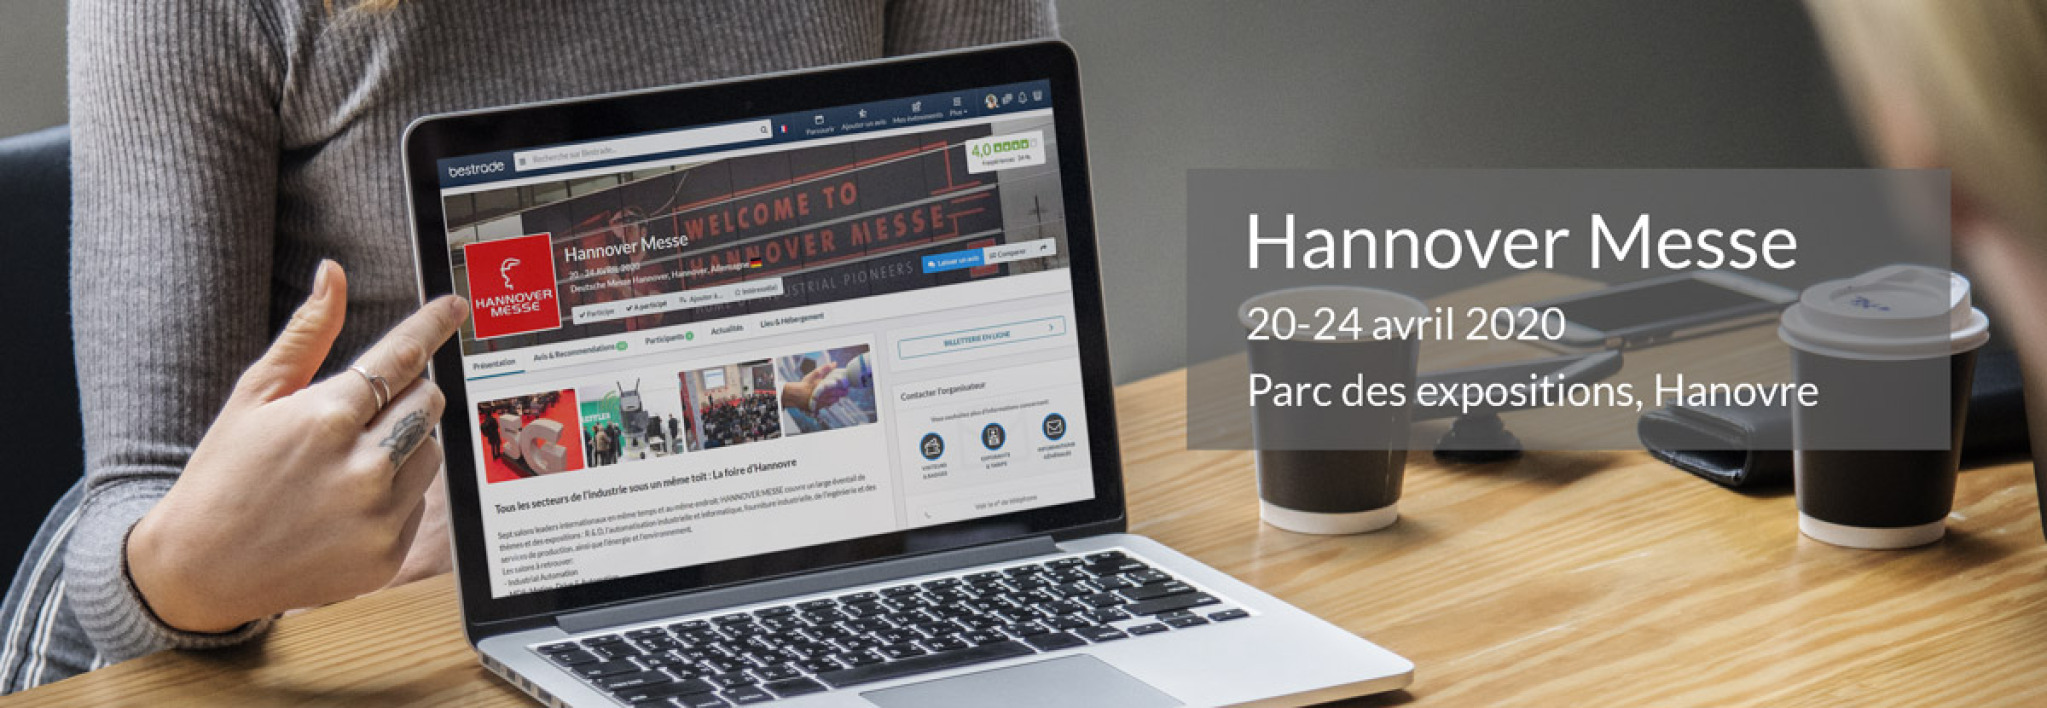 Hannover Messe 2020-Infos-clés